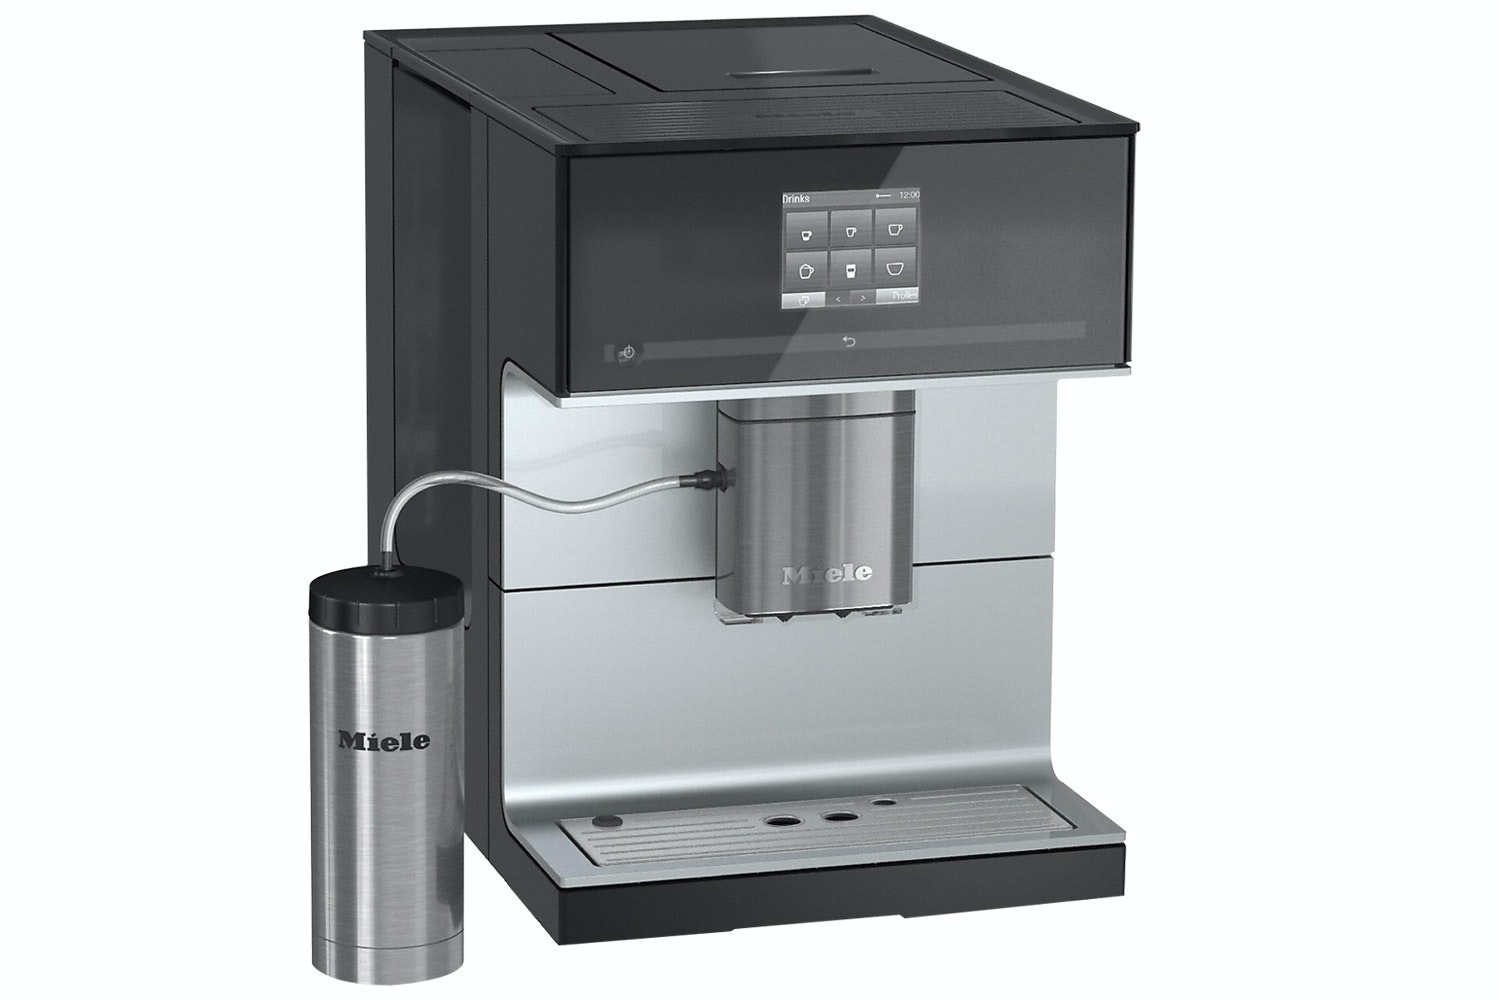 Miele CM 7300  Countertop Coffee Machine   with OneTouch for Two Feature and Heated Cup Rack for Perfect Coffee